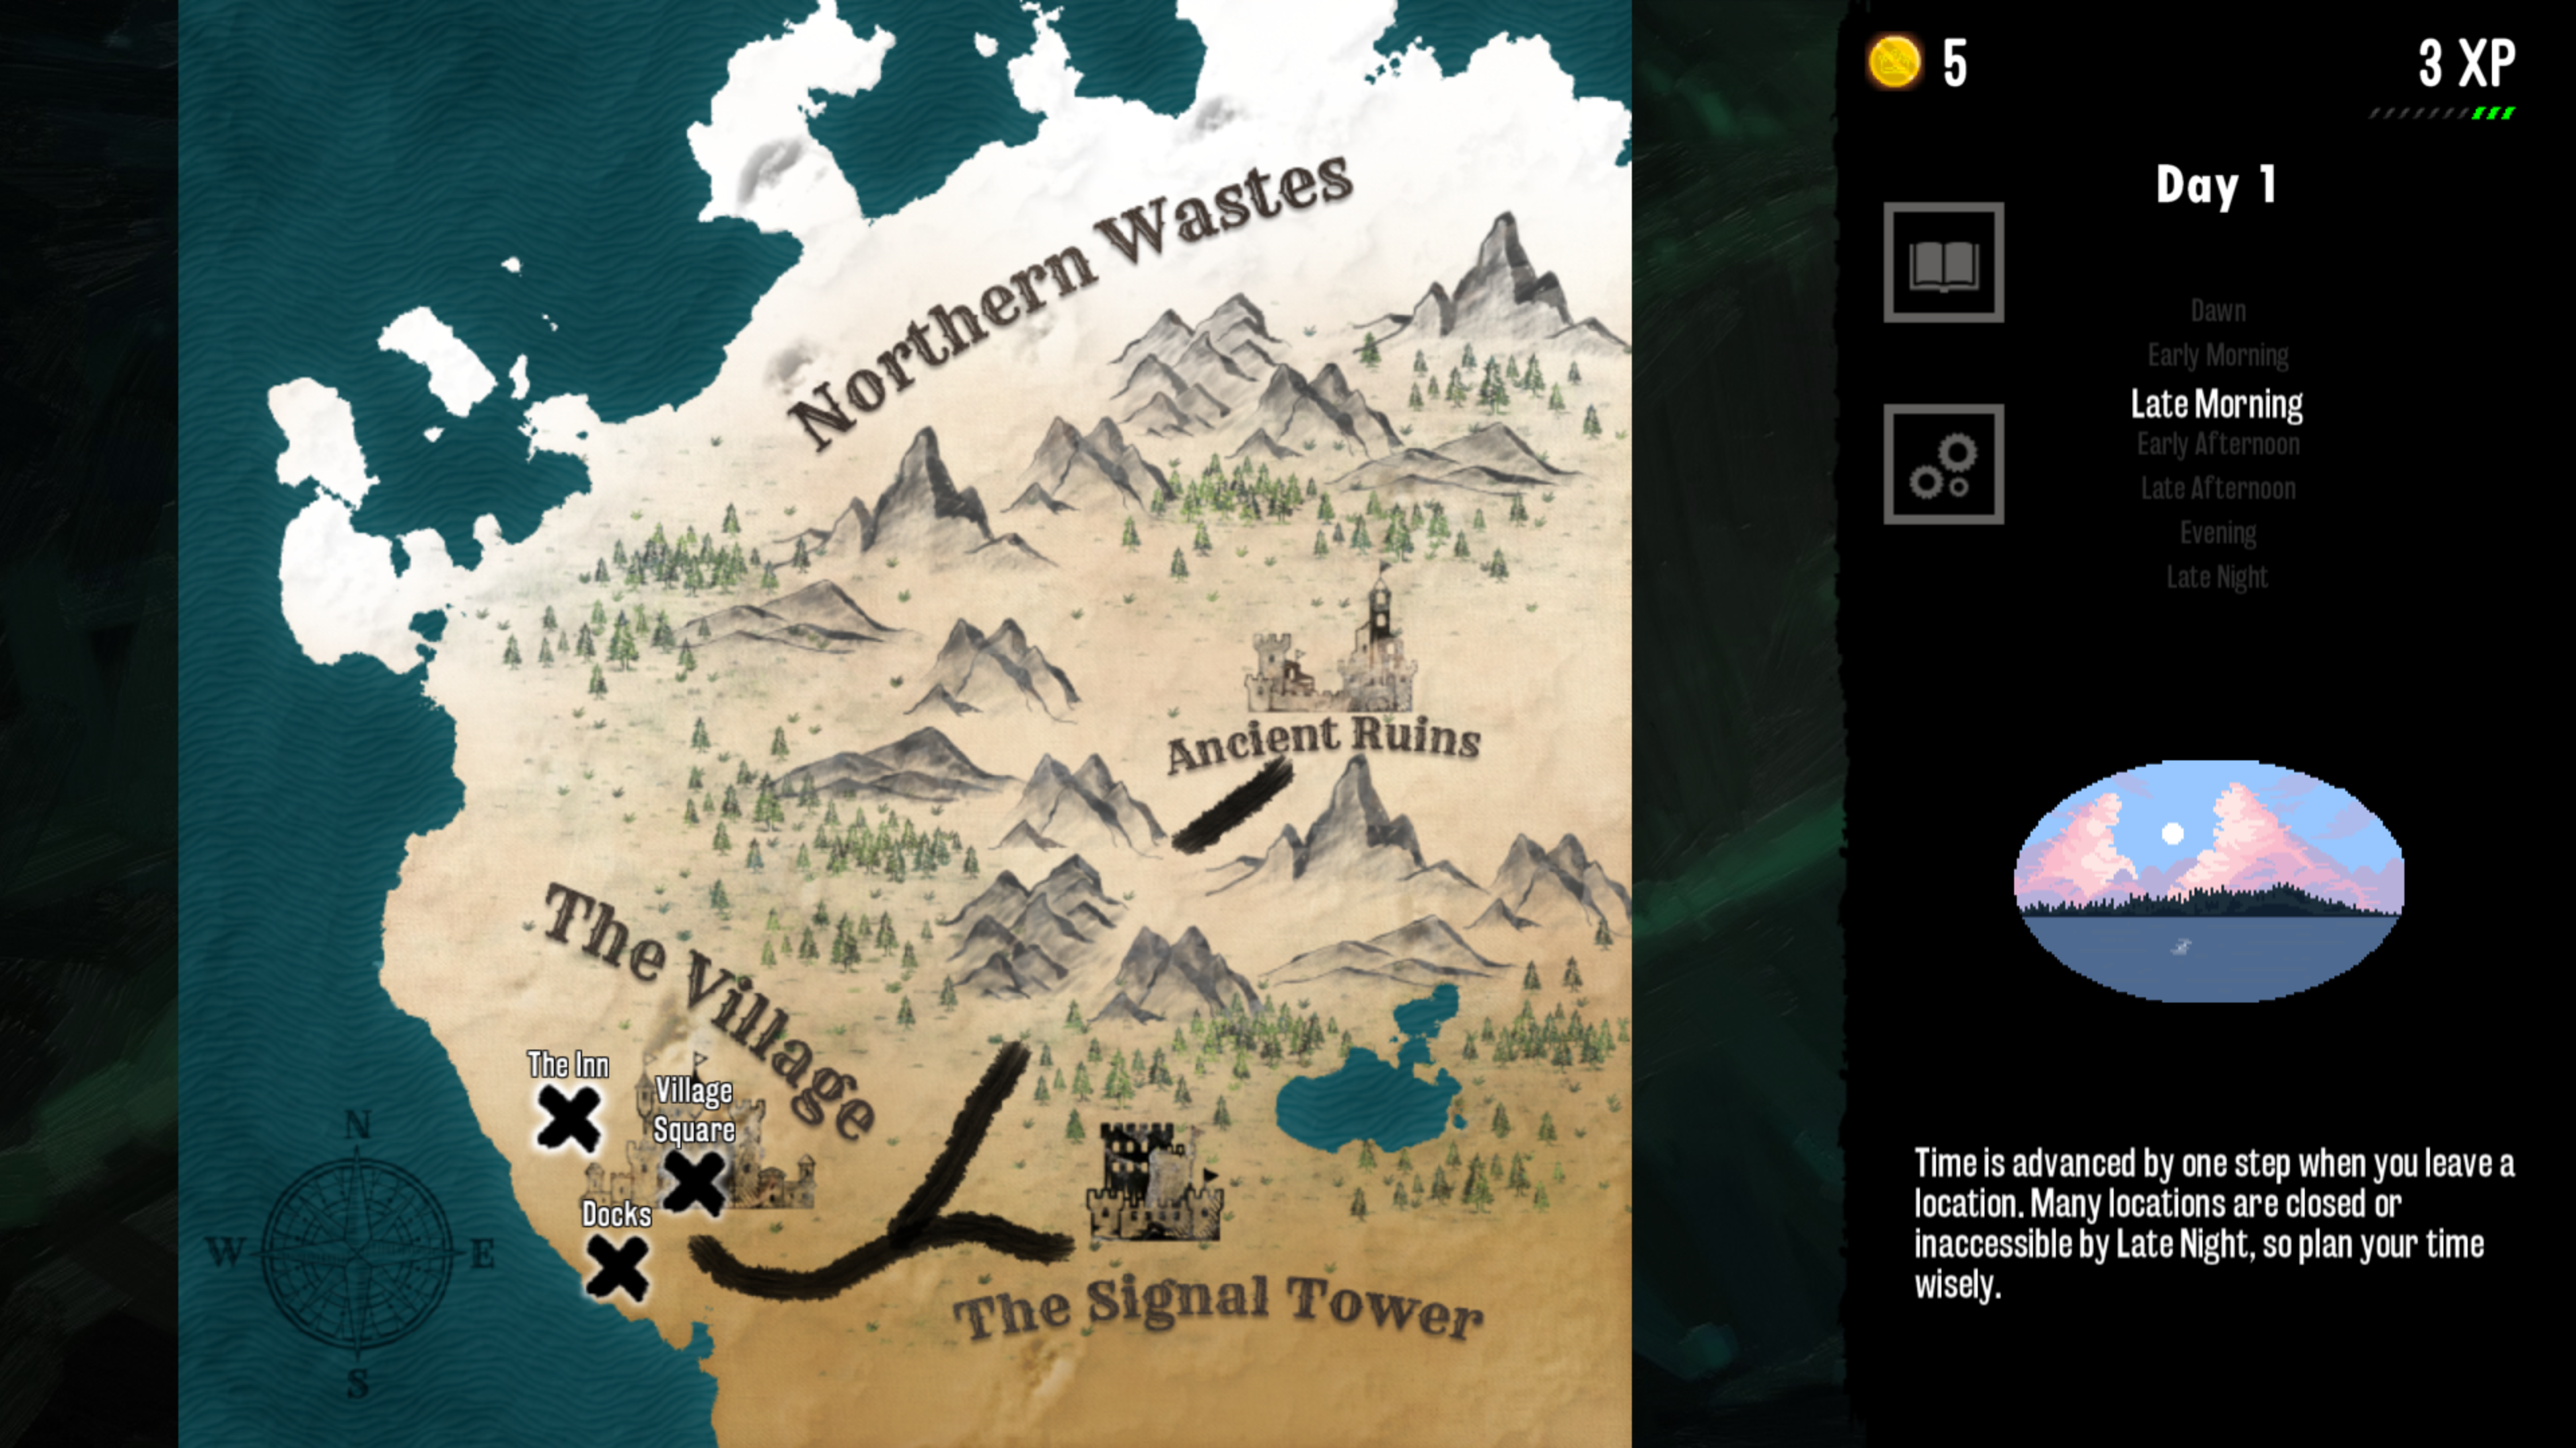 The Magister. World map showing the village, the signal tower, ancient ruins and northern wastes